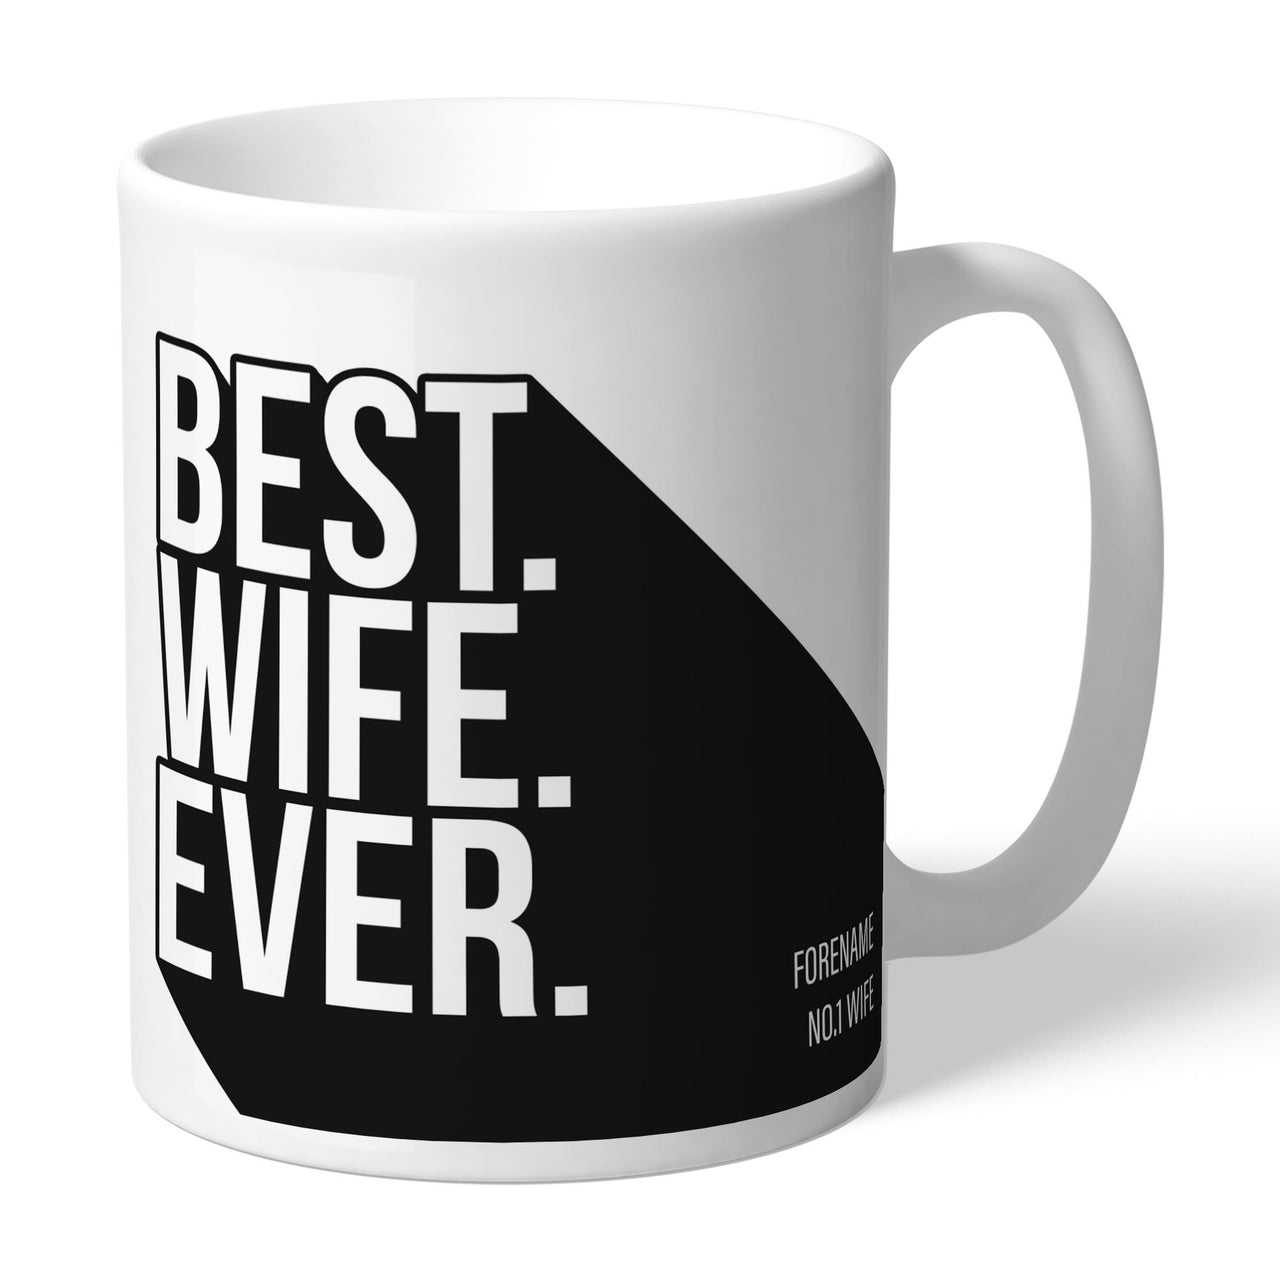 Swansea City Best Wife Ever Mugs, Gifts